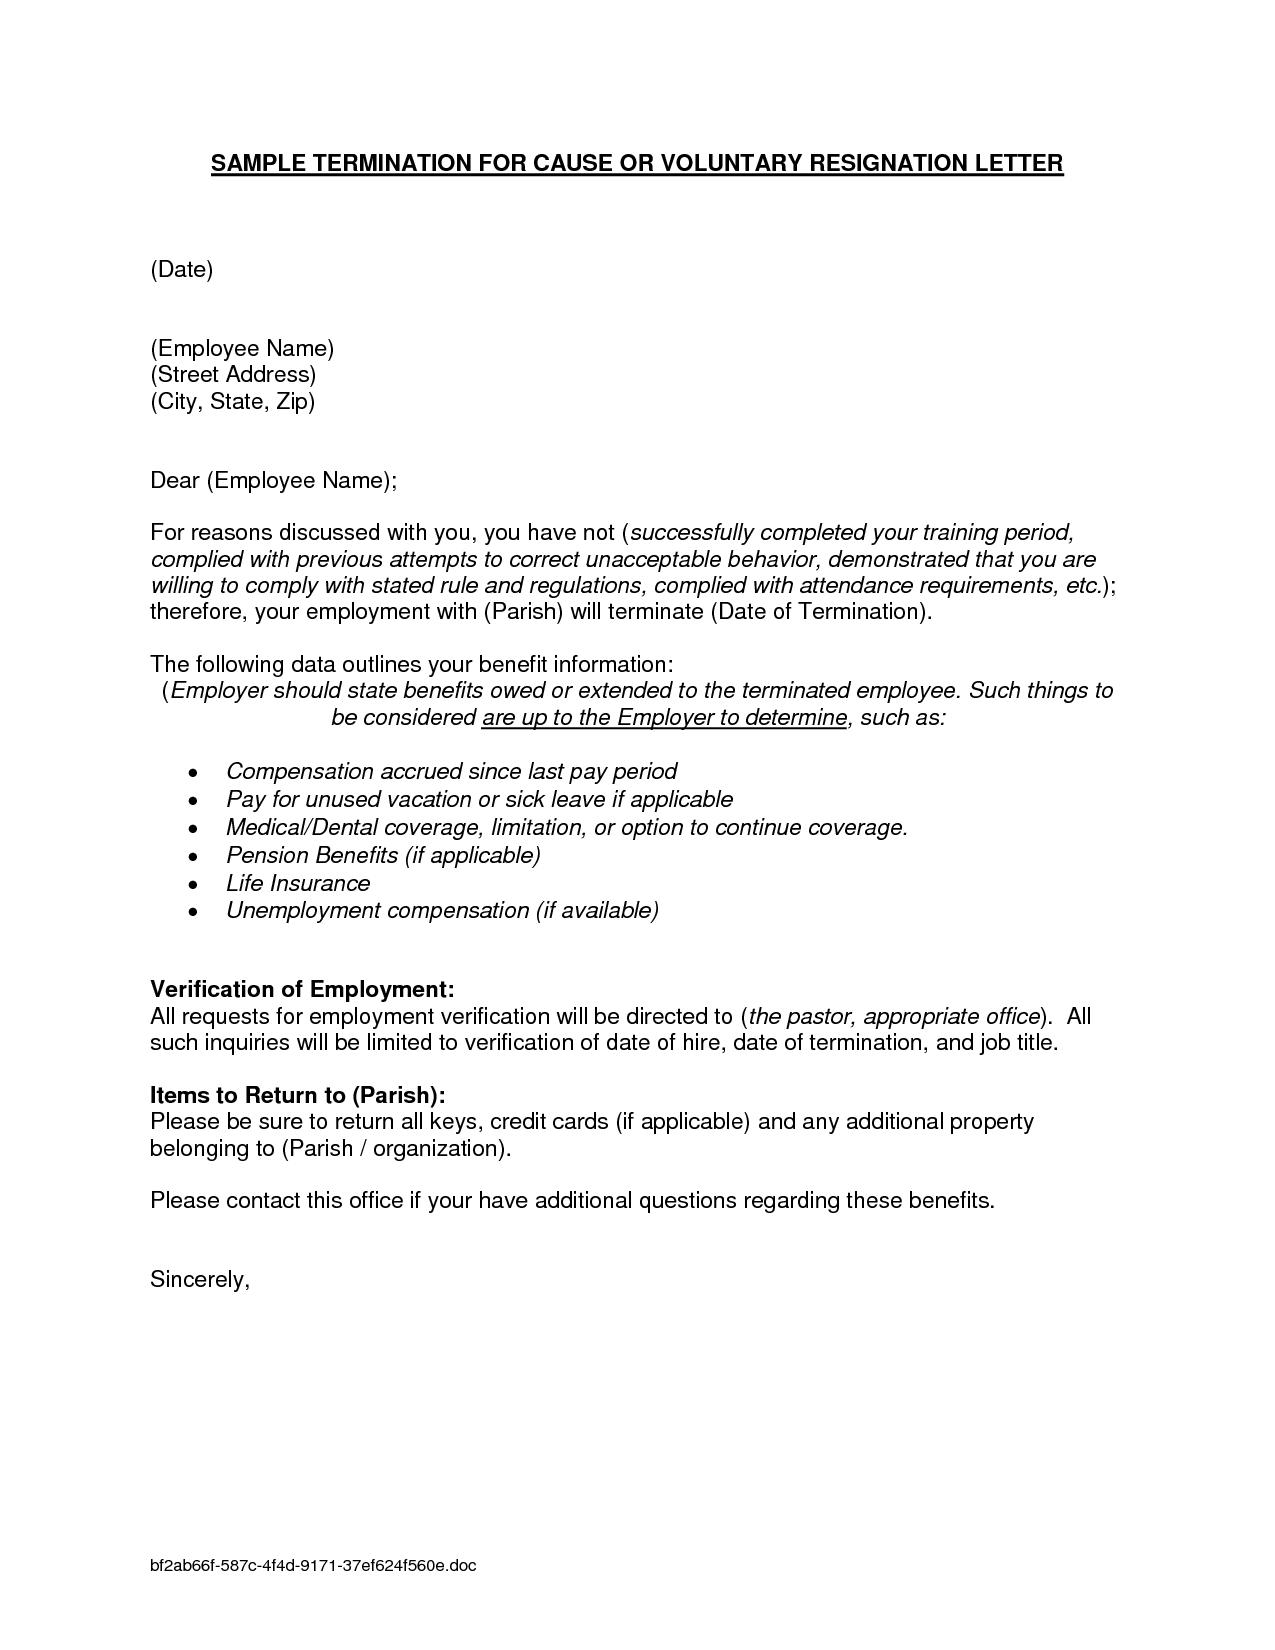 Resigning letter sample with reasonwriting a letter of resignation resigning letter sample with reasonwriting a letter of resignation email letter sample altavistaventures Images